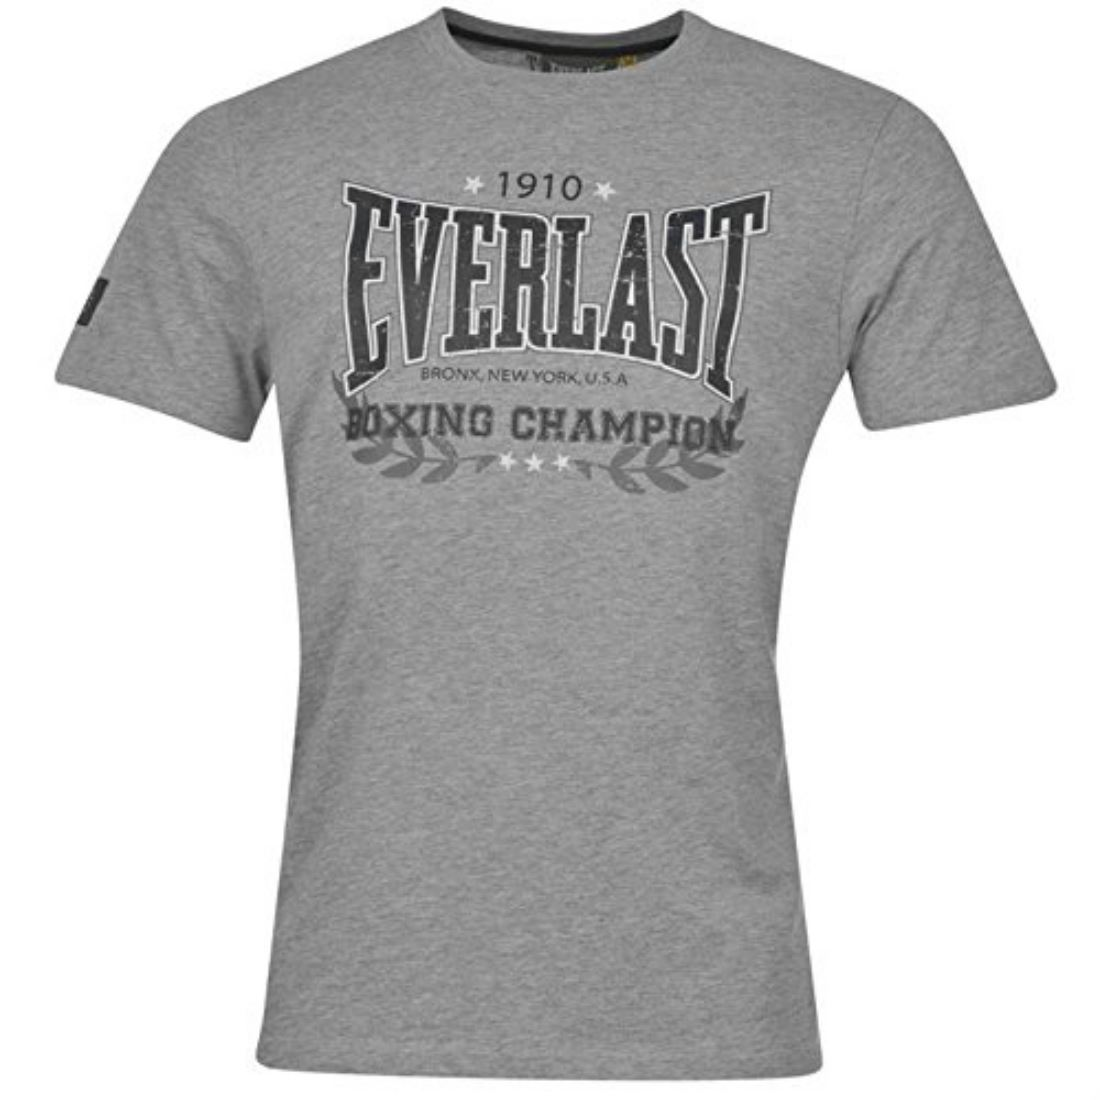 Everlast Mens Heritage T Shirt Crew Neck Short Sleeves Cotton Casual Top New